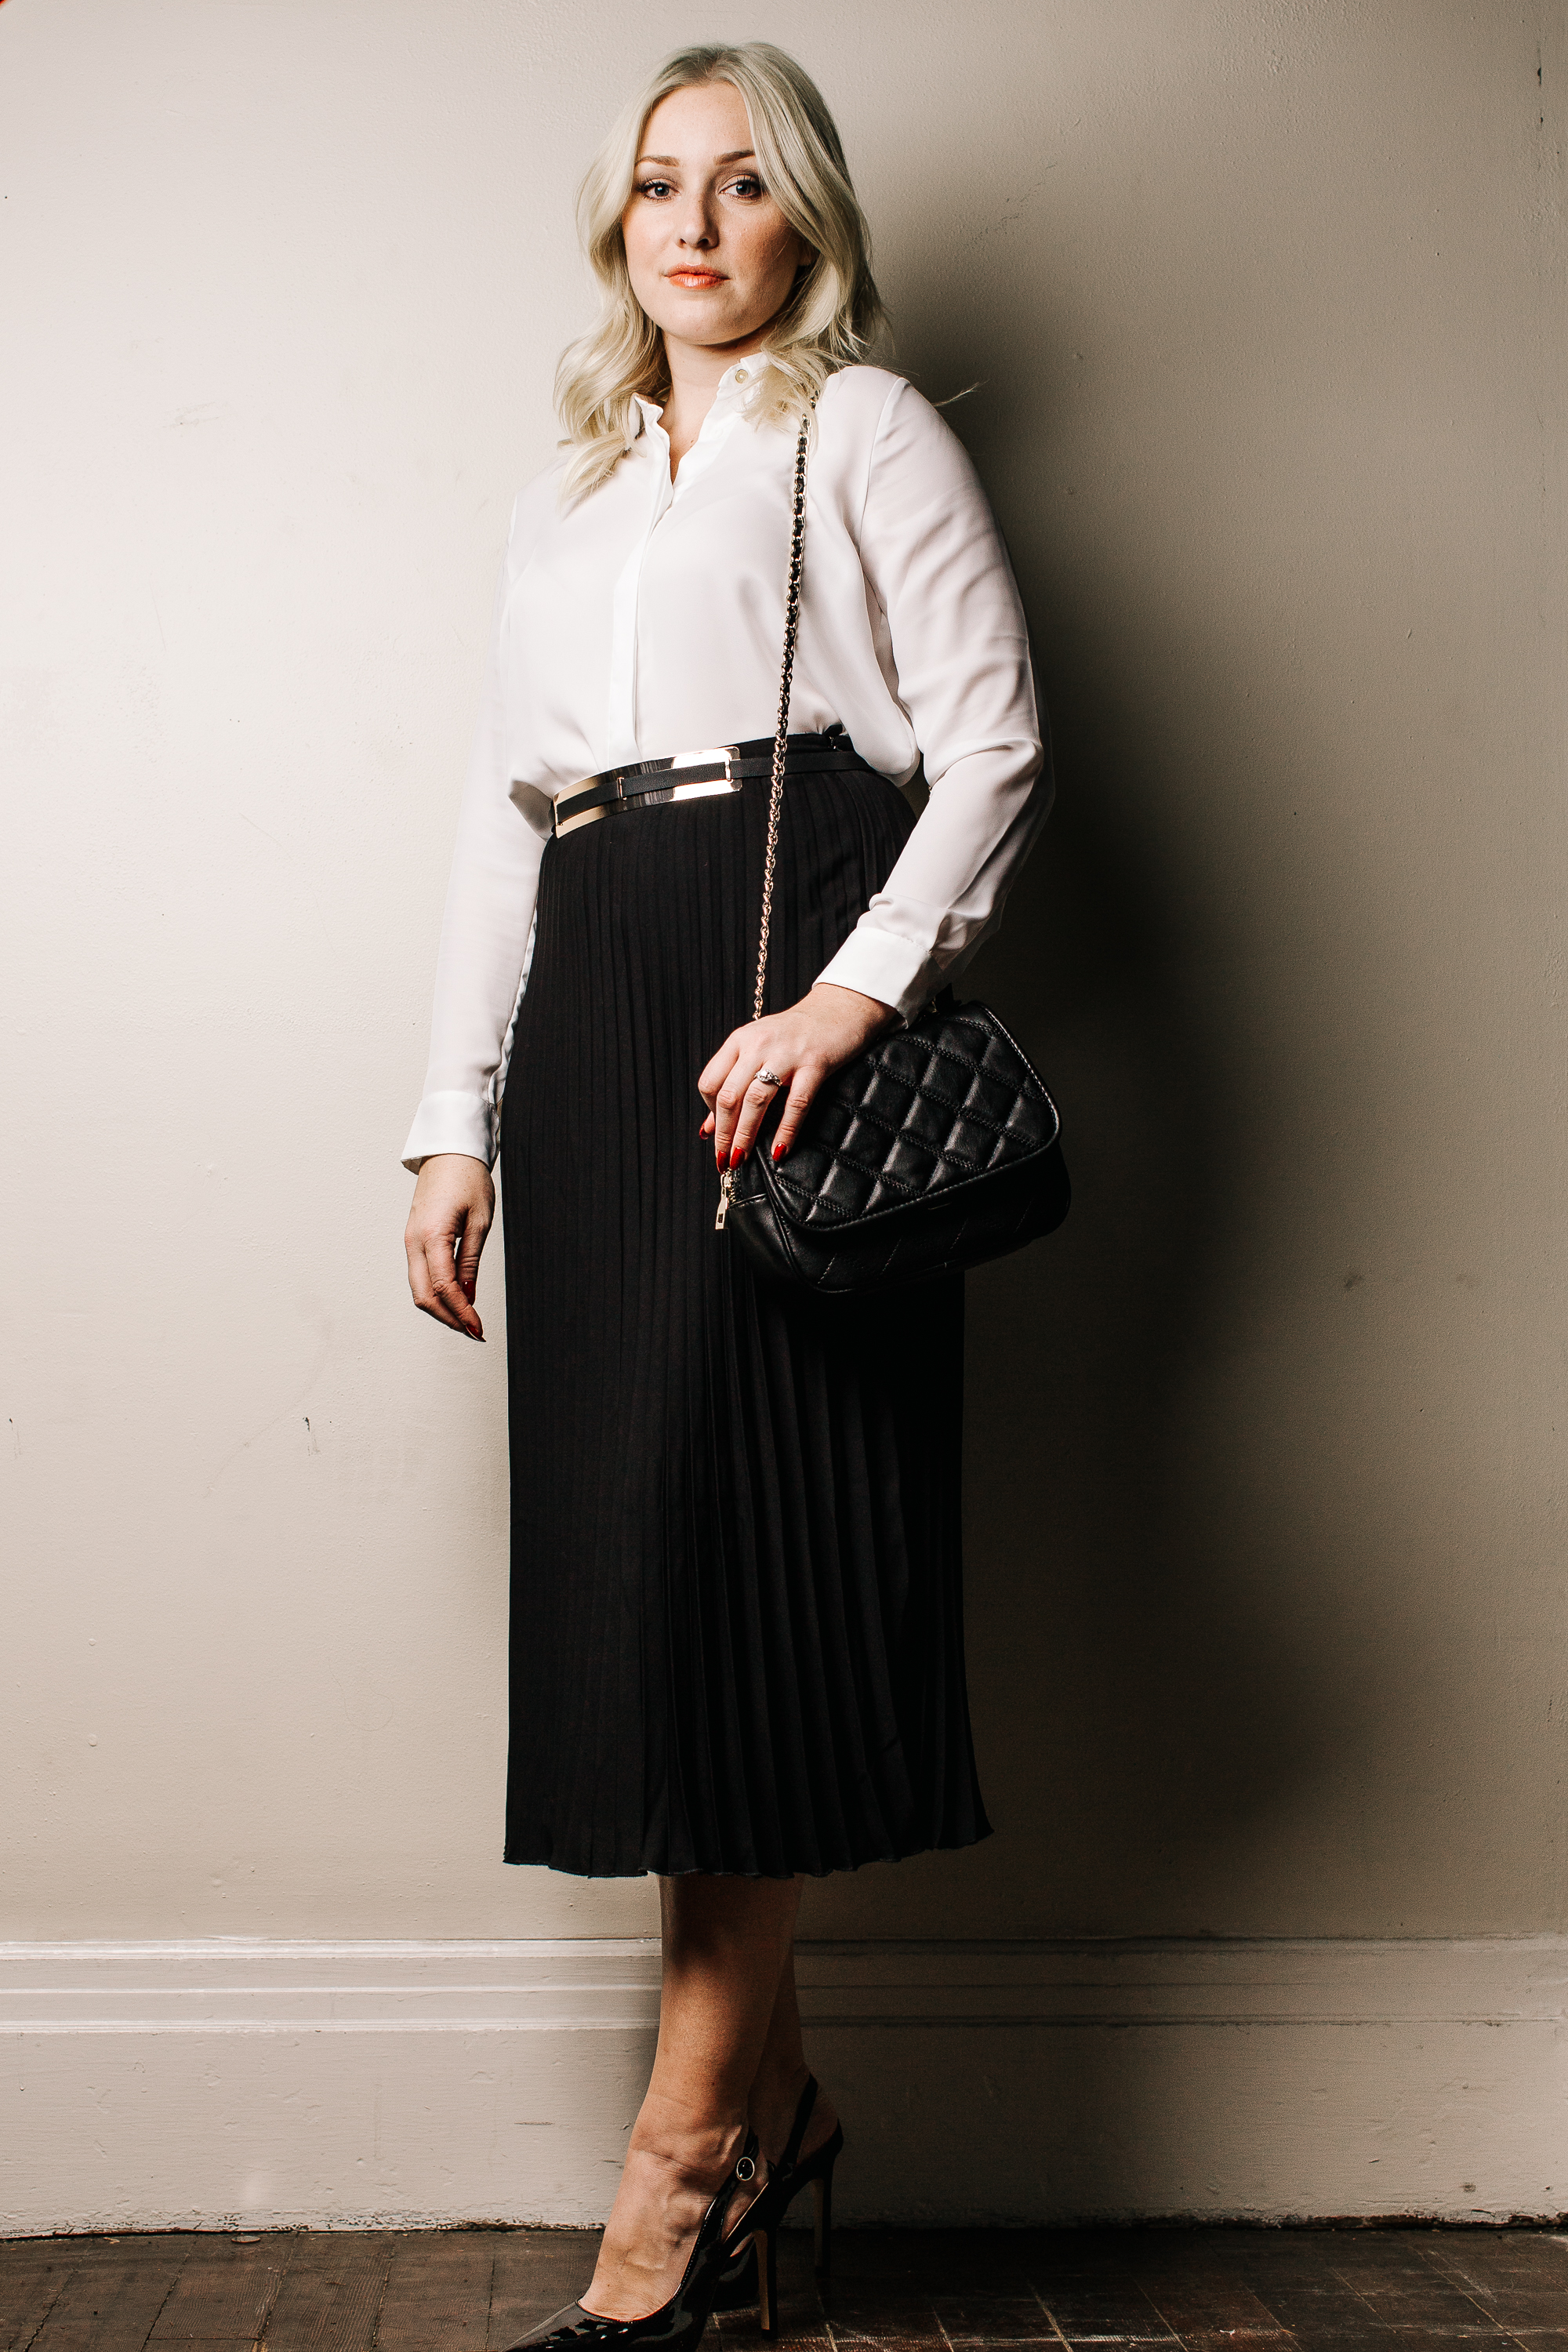 trish-taylor-pleated-midi-skirt-and-white-blouse-full